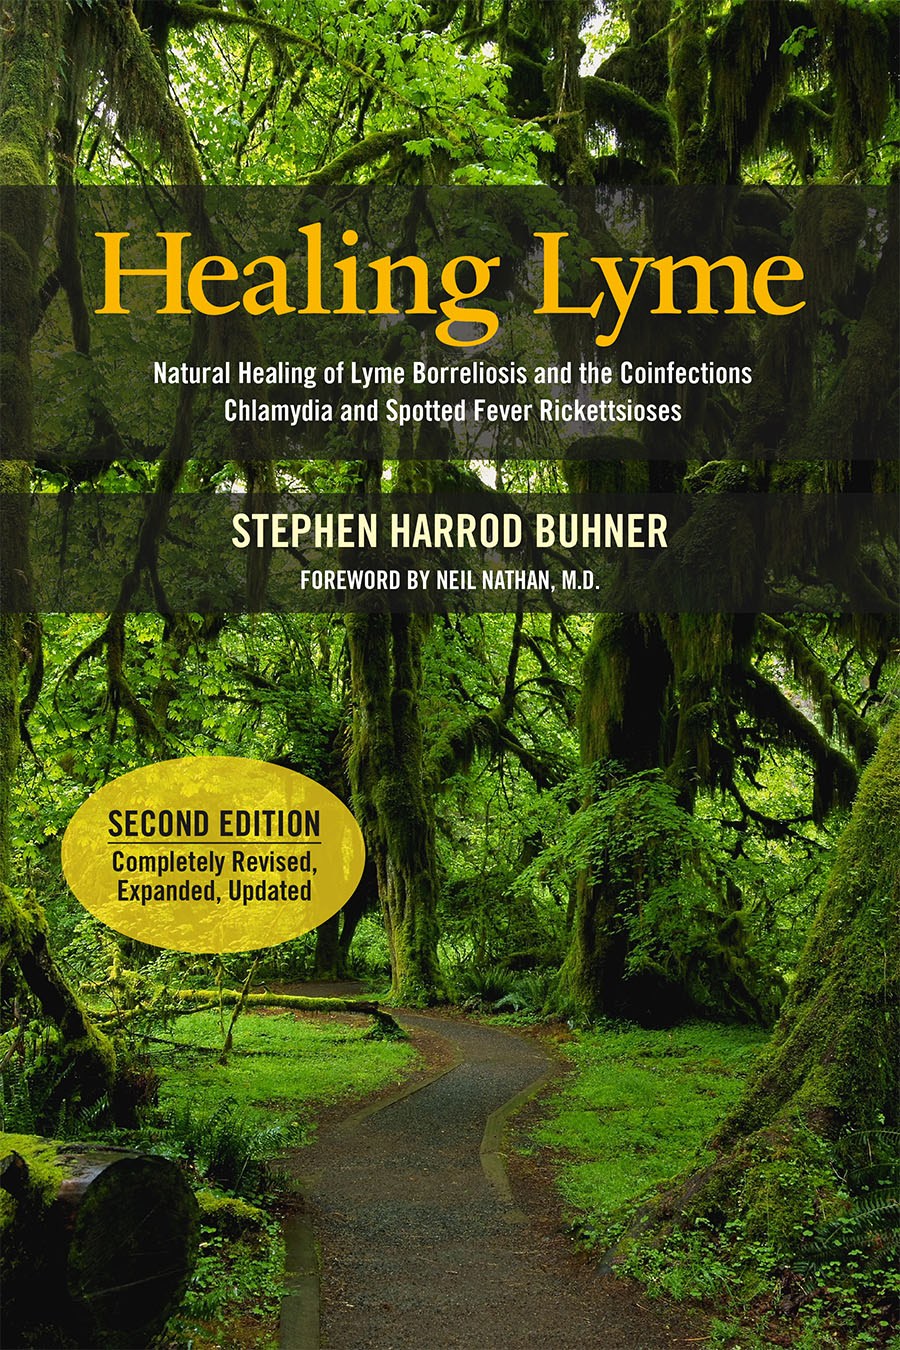 The Healing Lyme cover